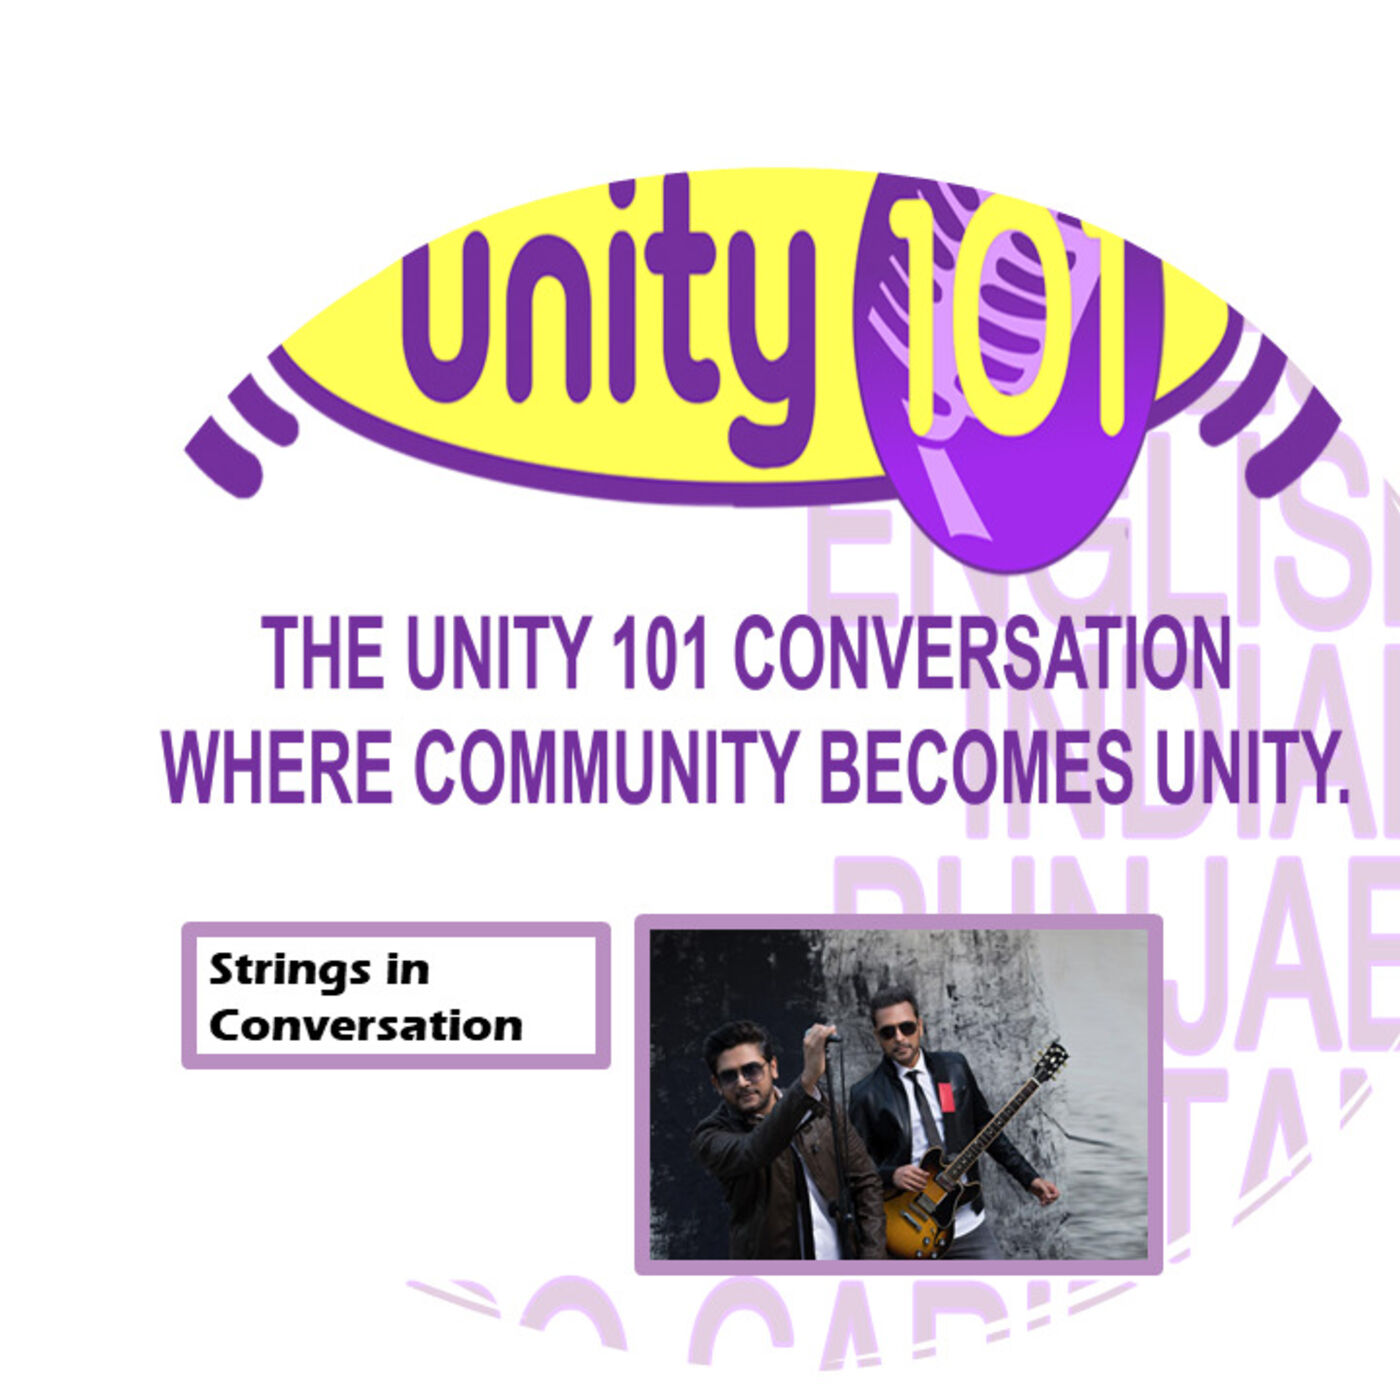 In conversation with Strings